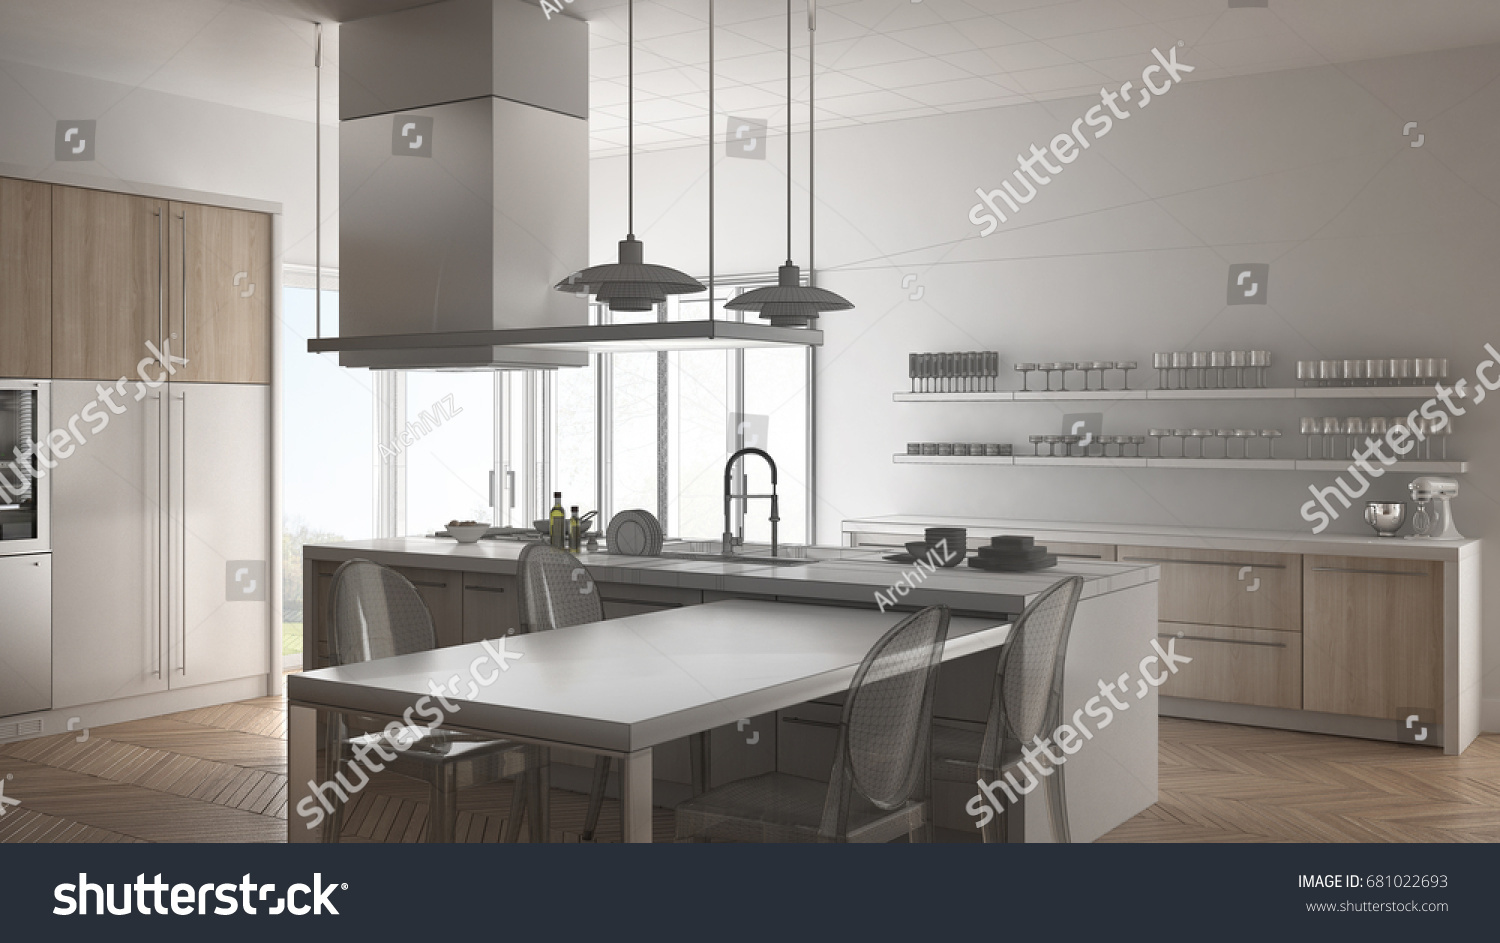 Unfinished Project Minimalistic Modern Kitchen Table Stock ...